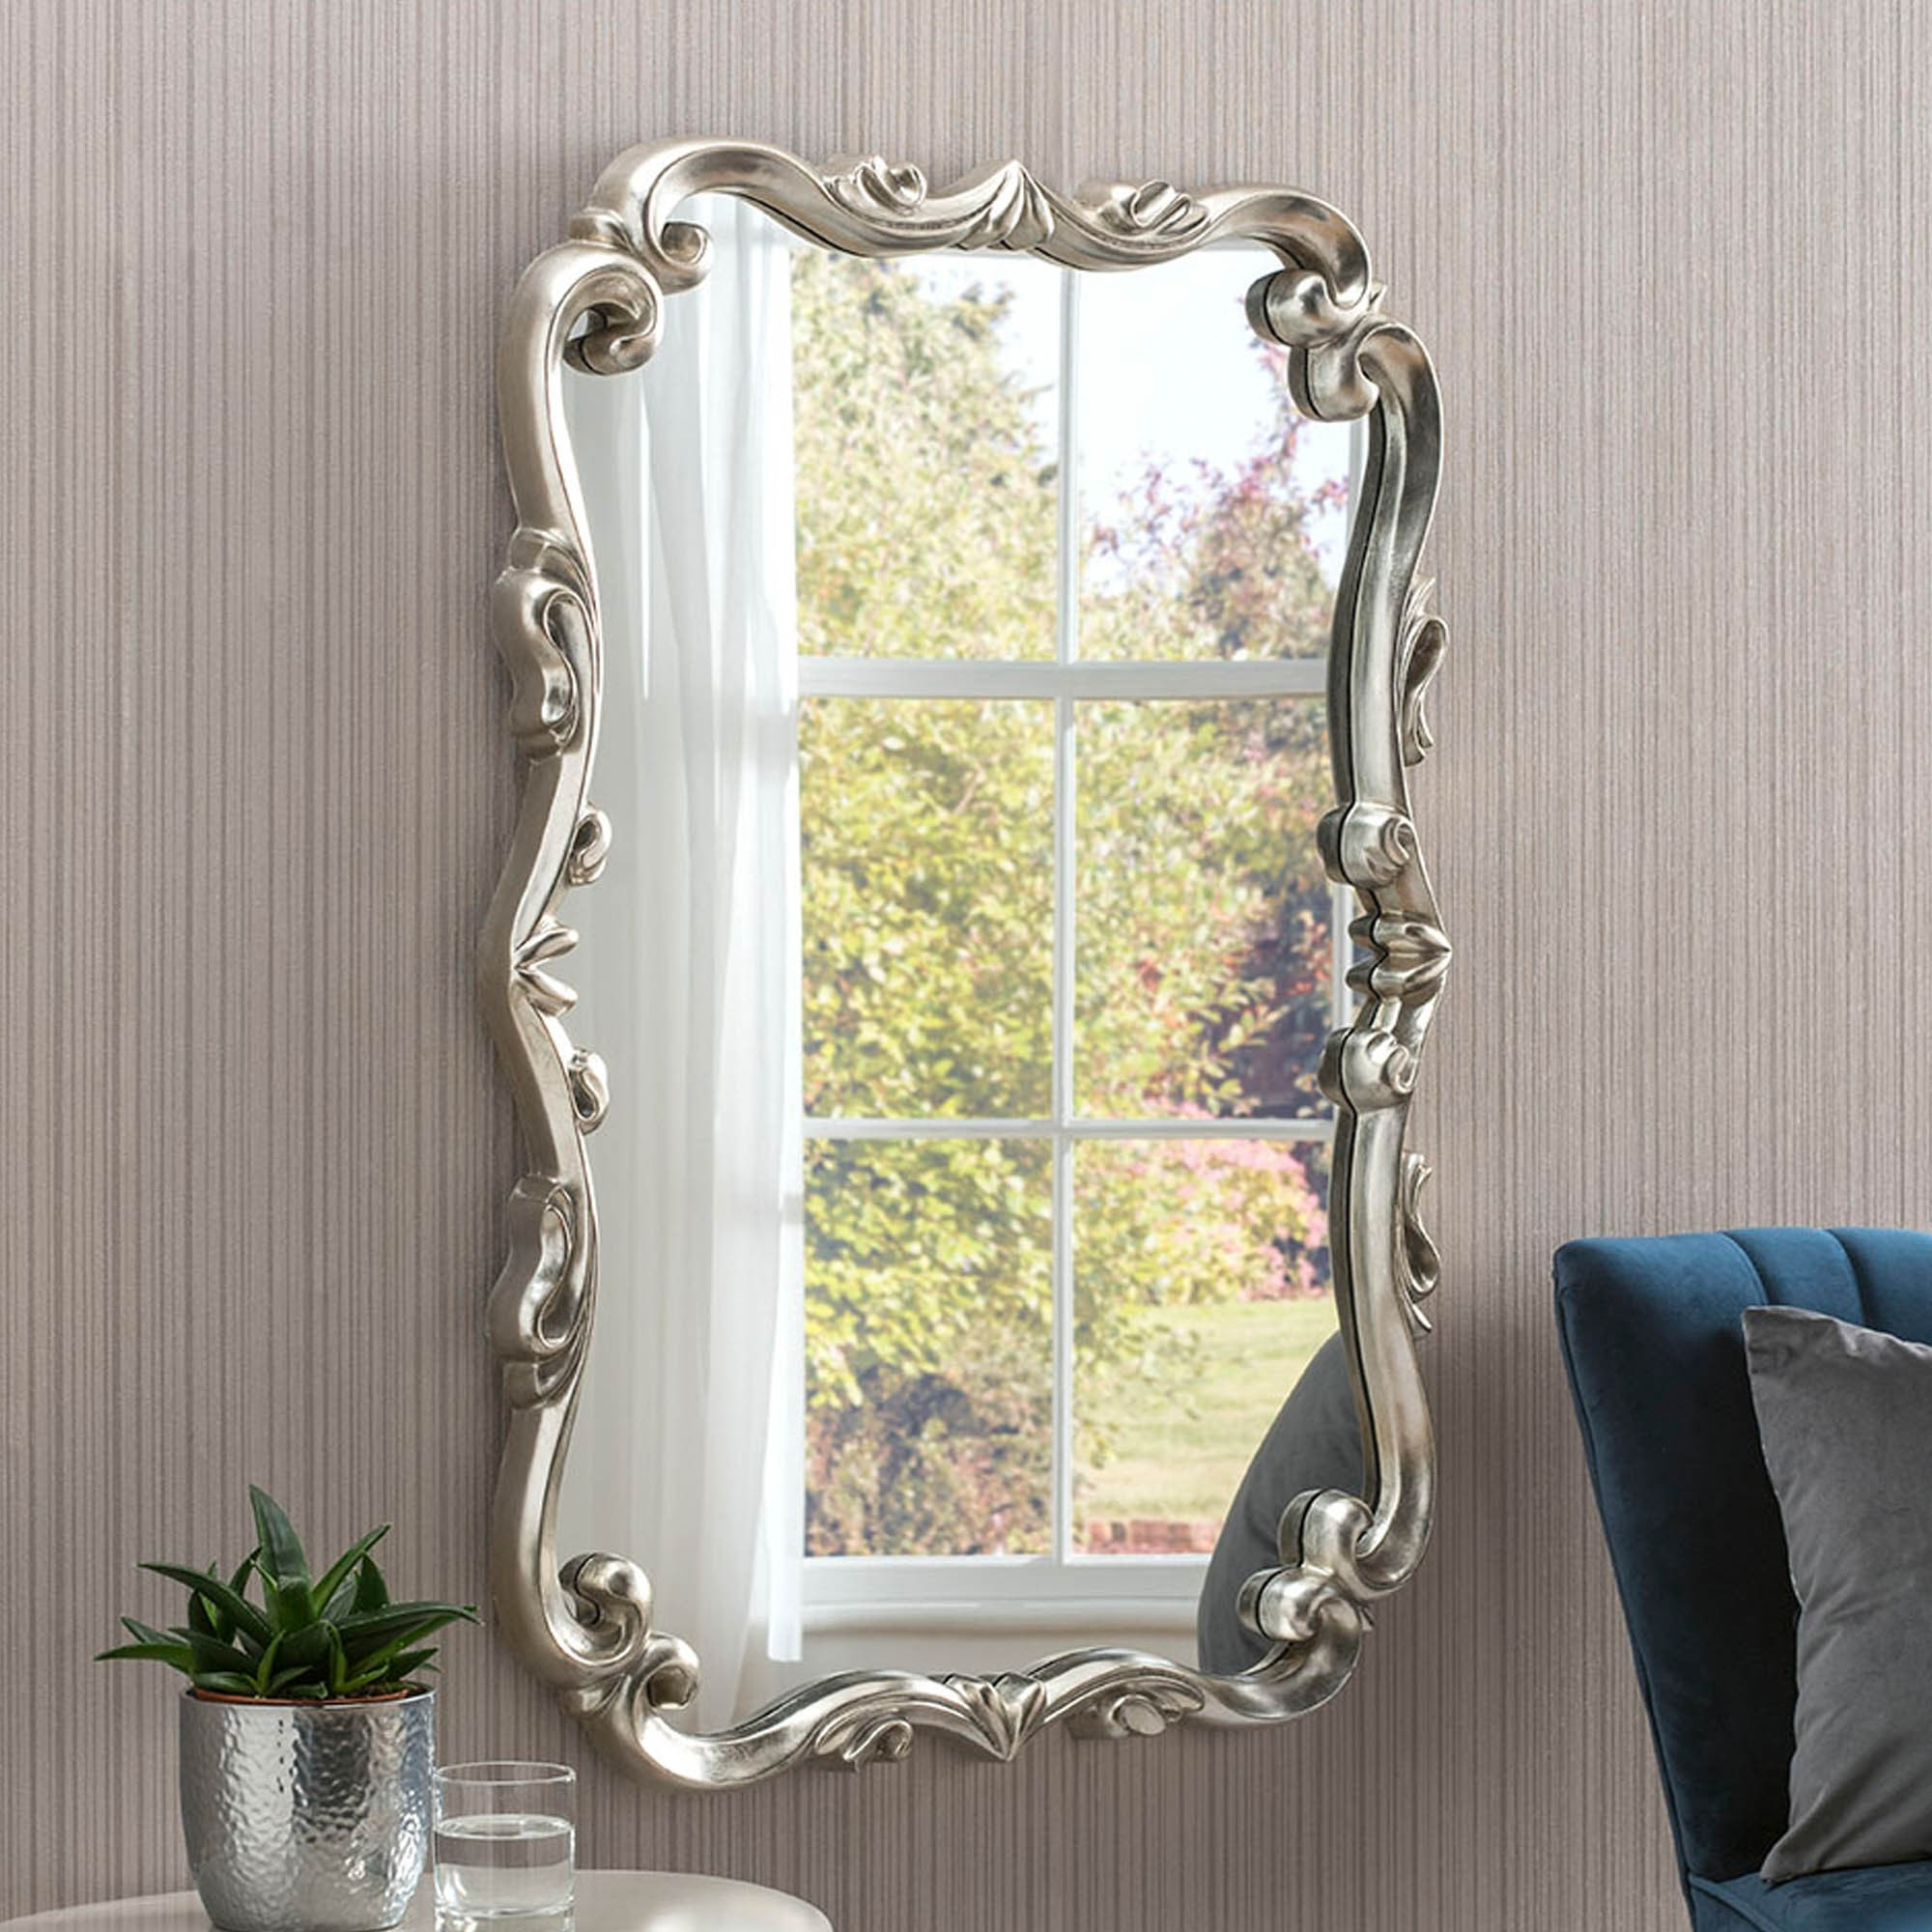 Antique French Style Champagne Wall Mirror Within Most Recently Released Champagne Wall Mirrors (View 9 of 20)